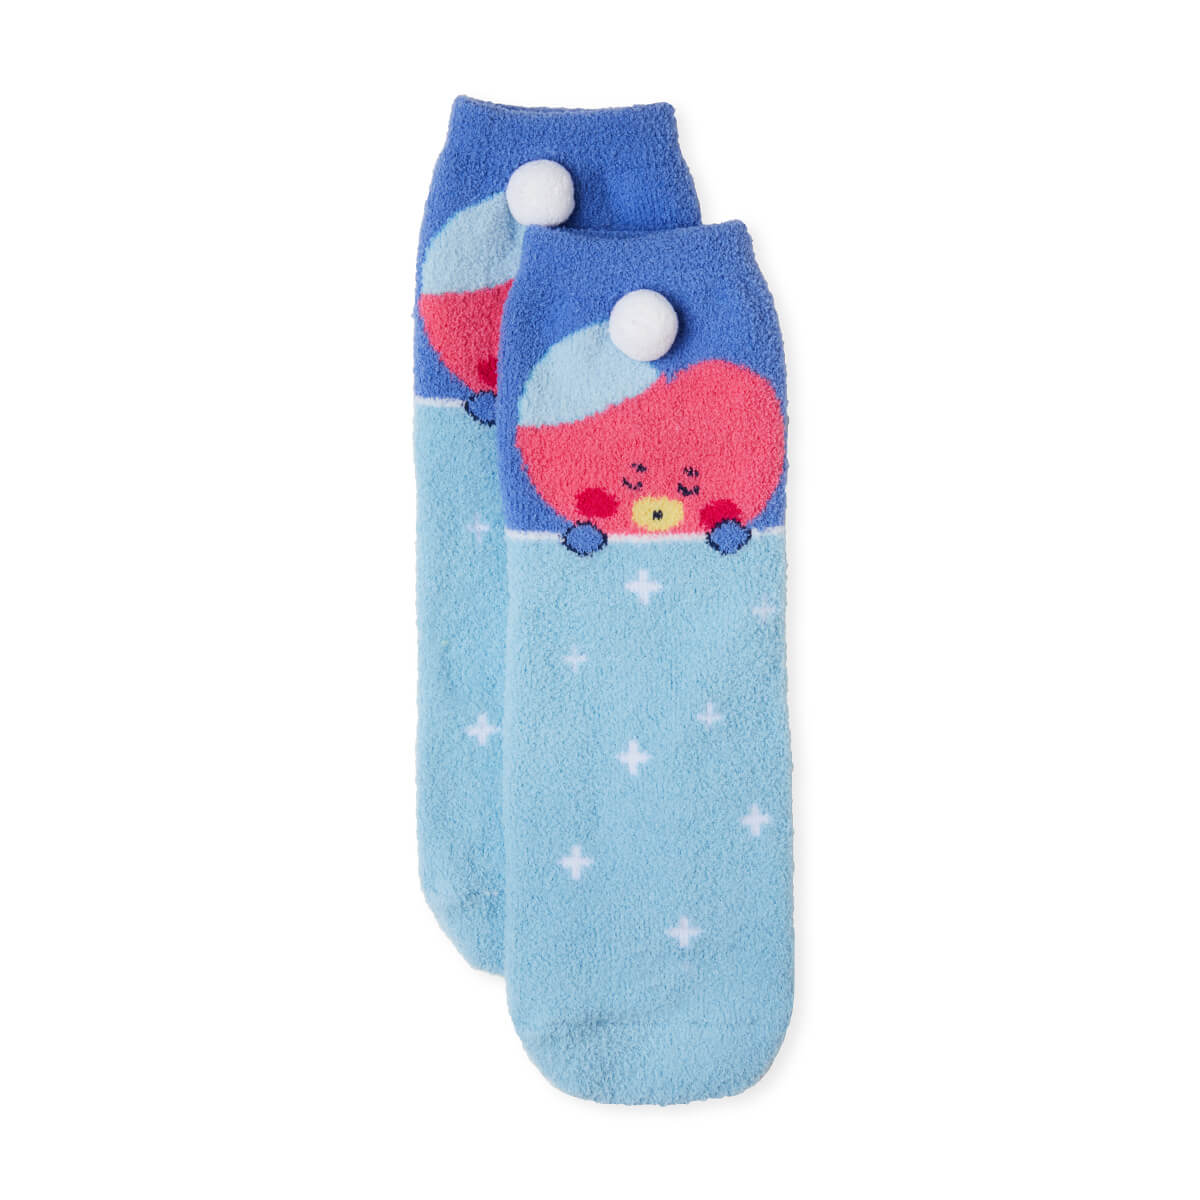 BT21 TATA Dream of Baby Fuzzy Sleep Socks